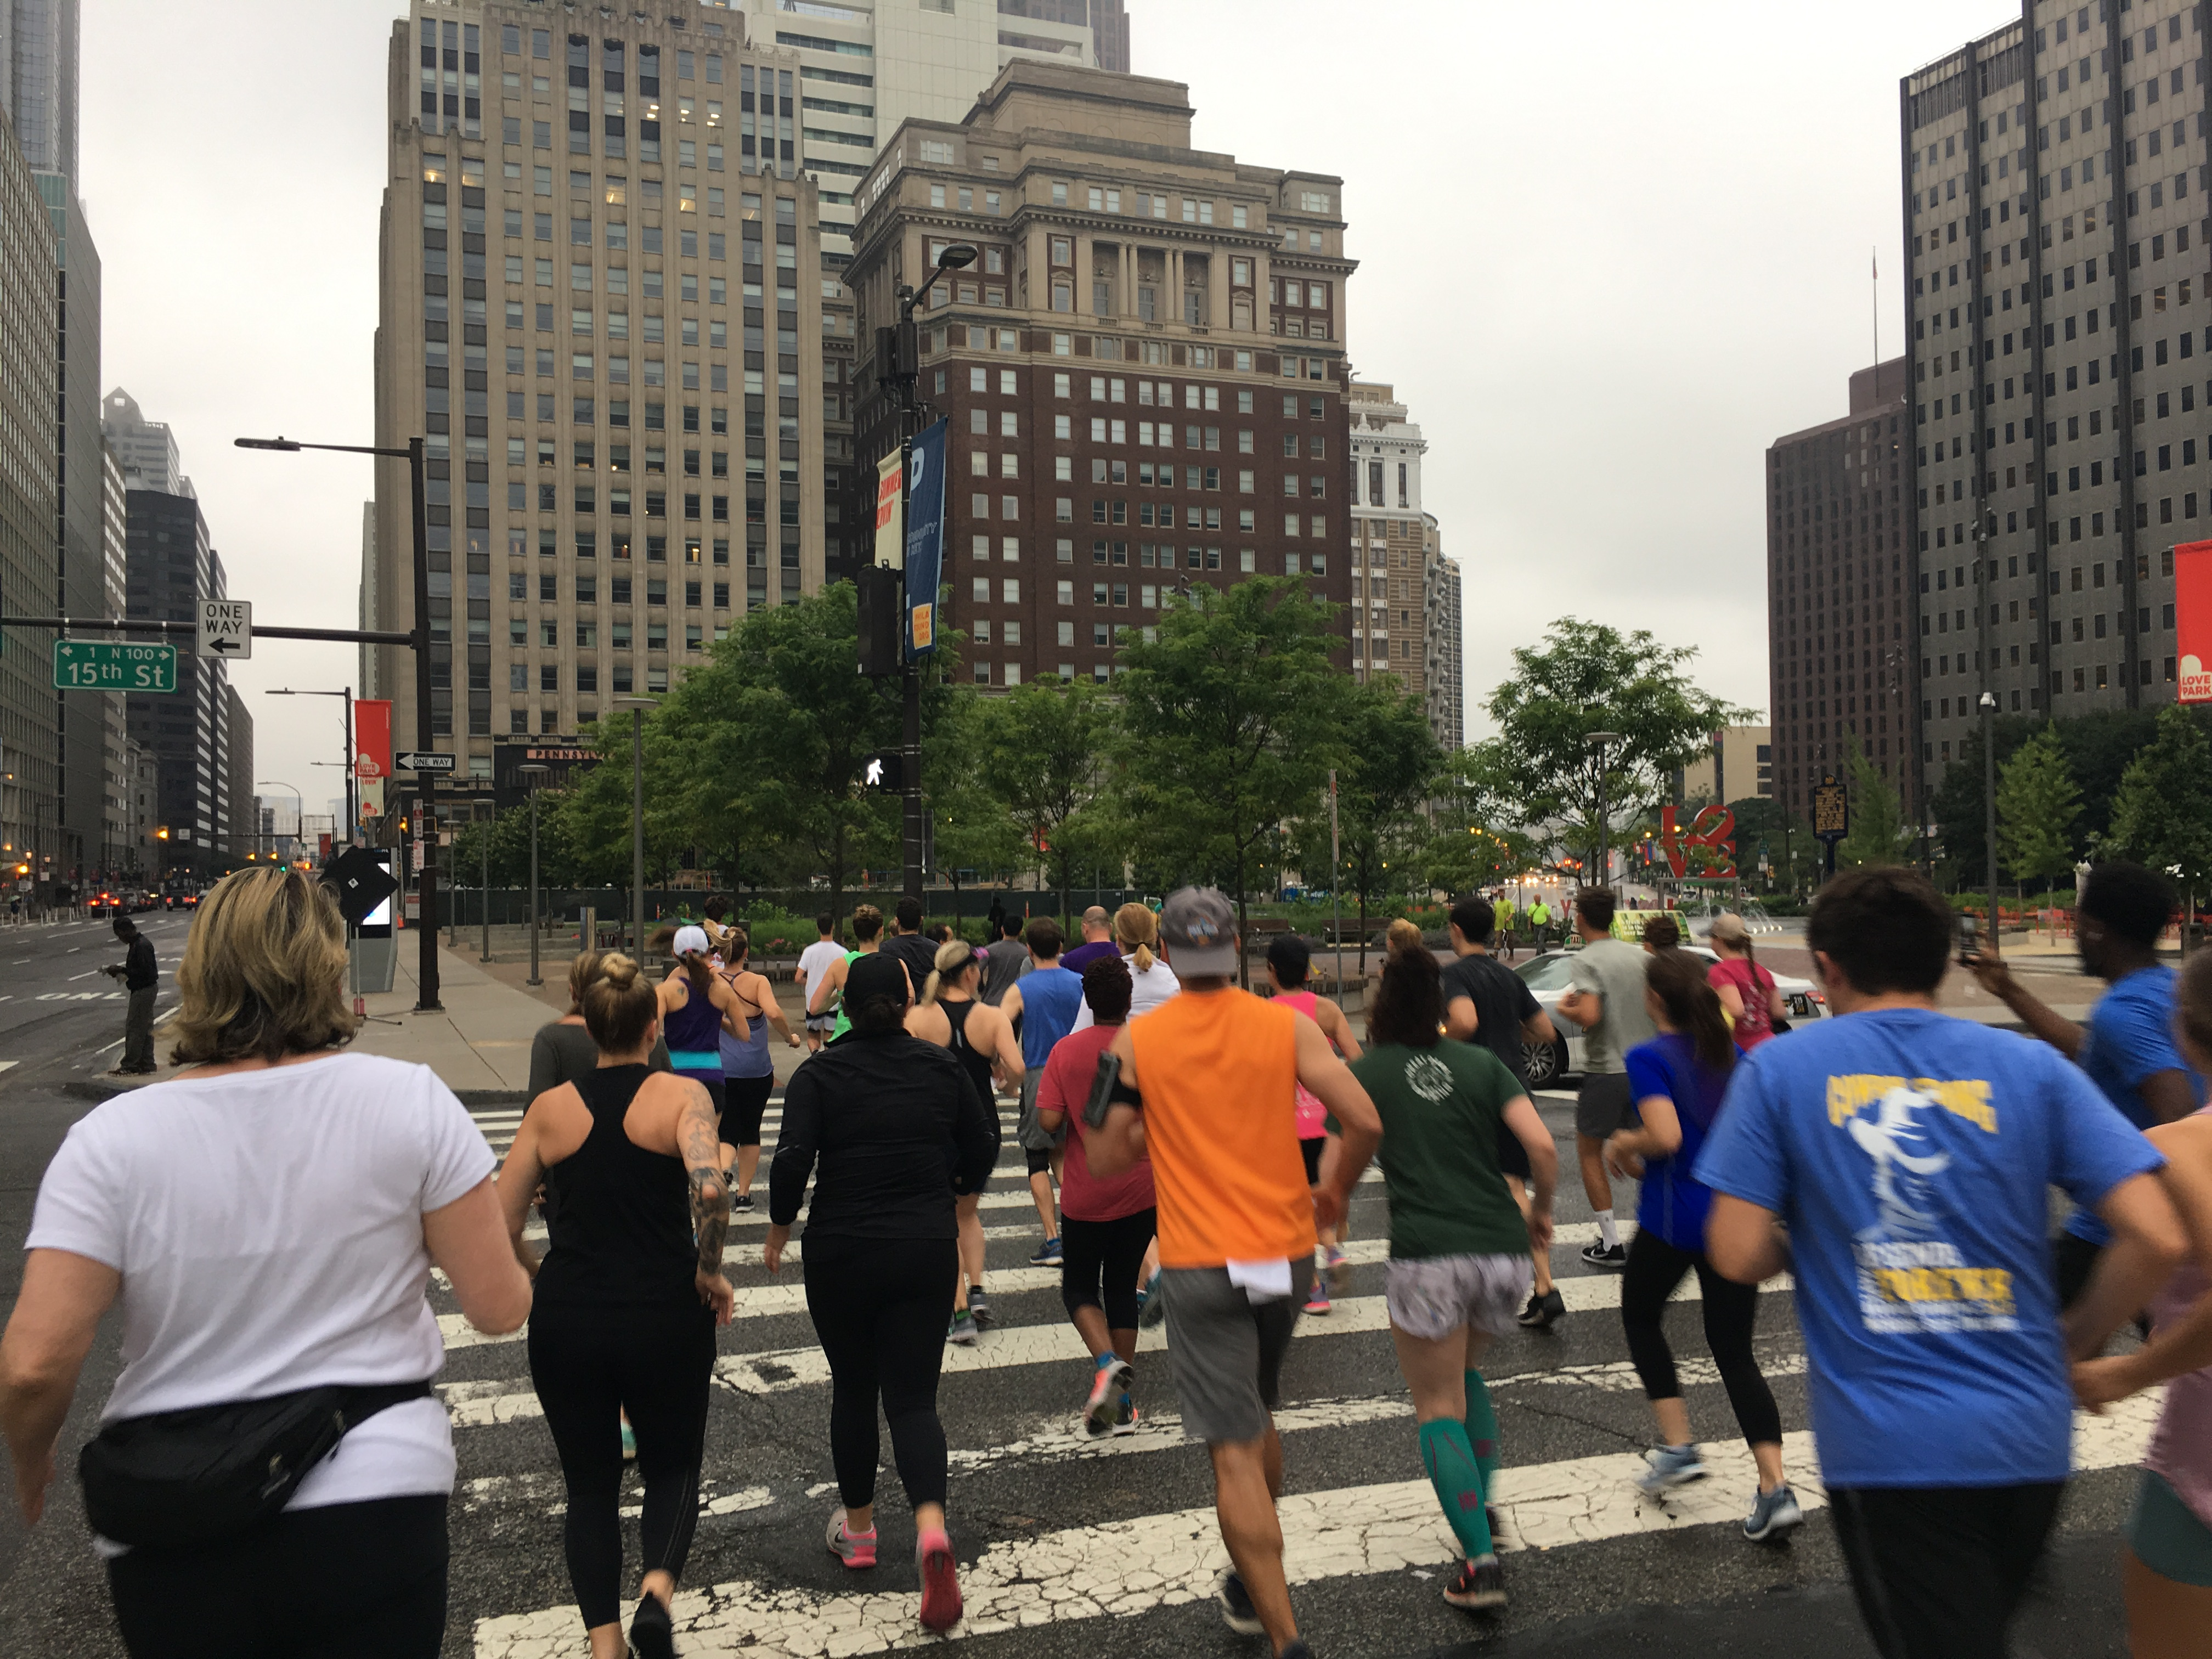 Runners cross a crosswalk in Philadelphia.